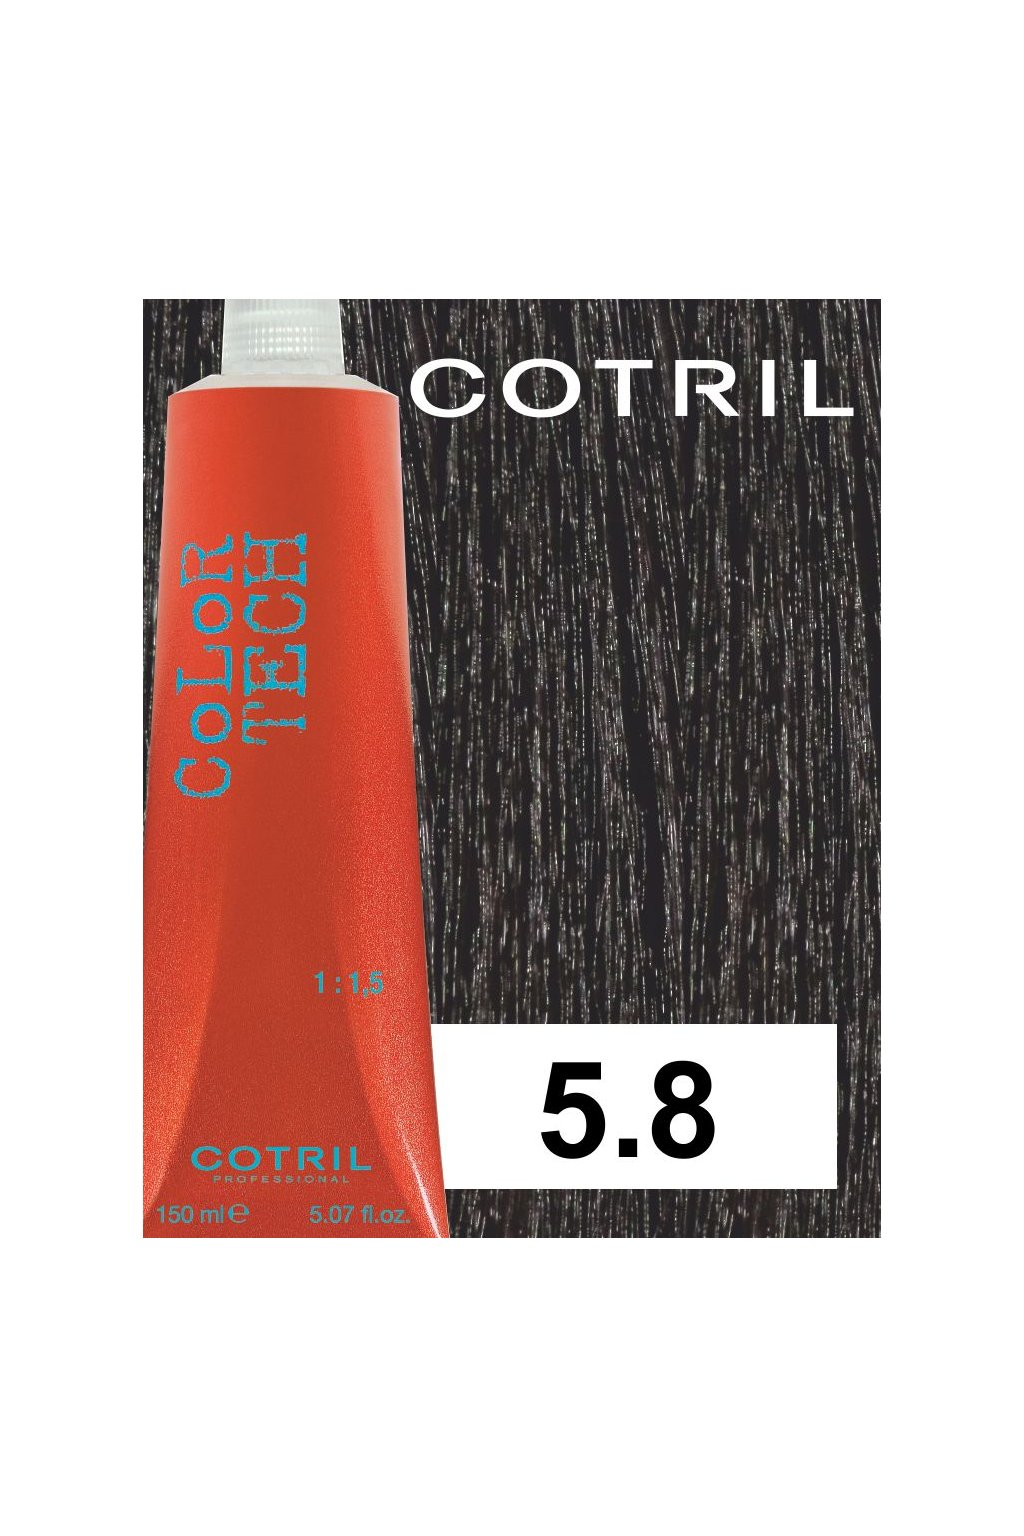 5 8 ct cotril